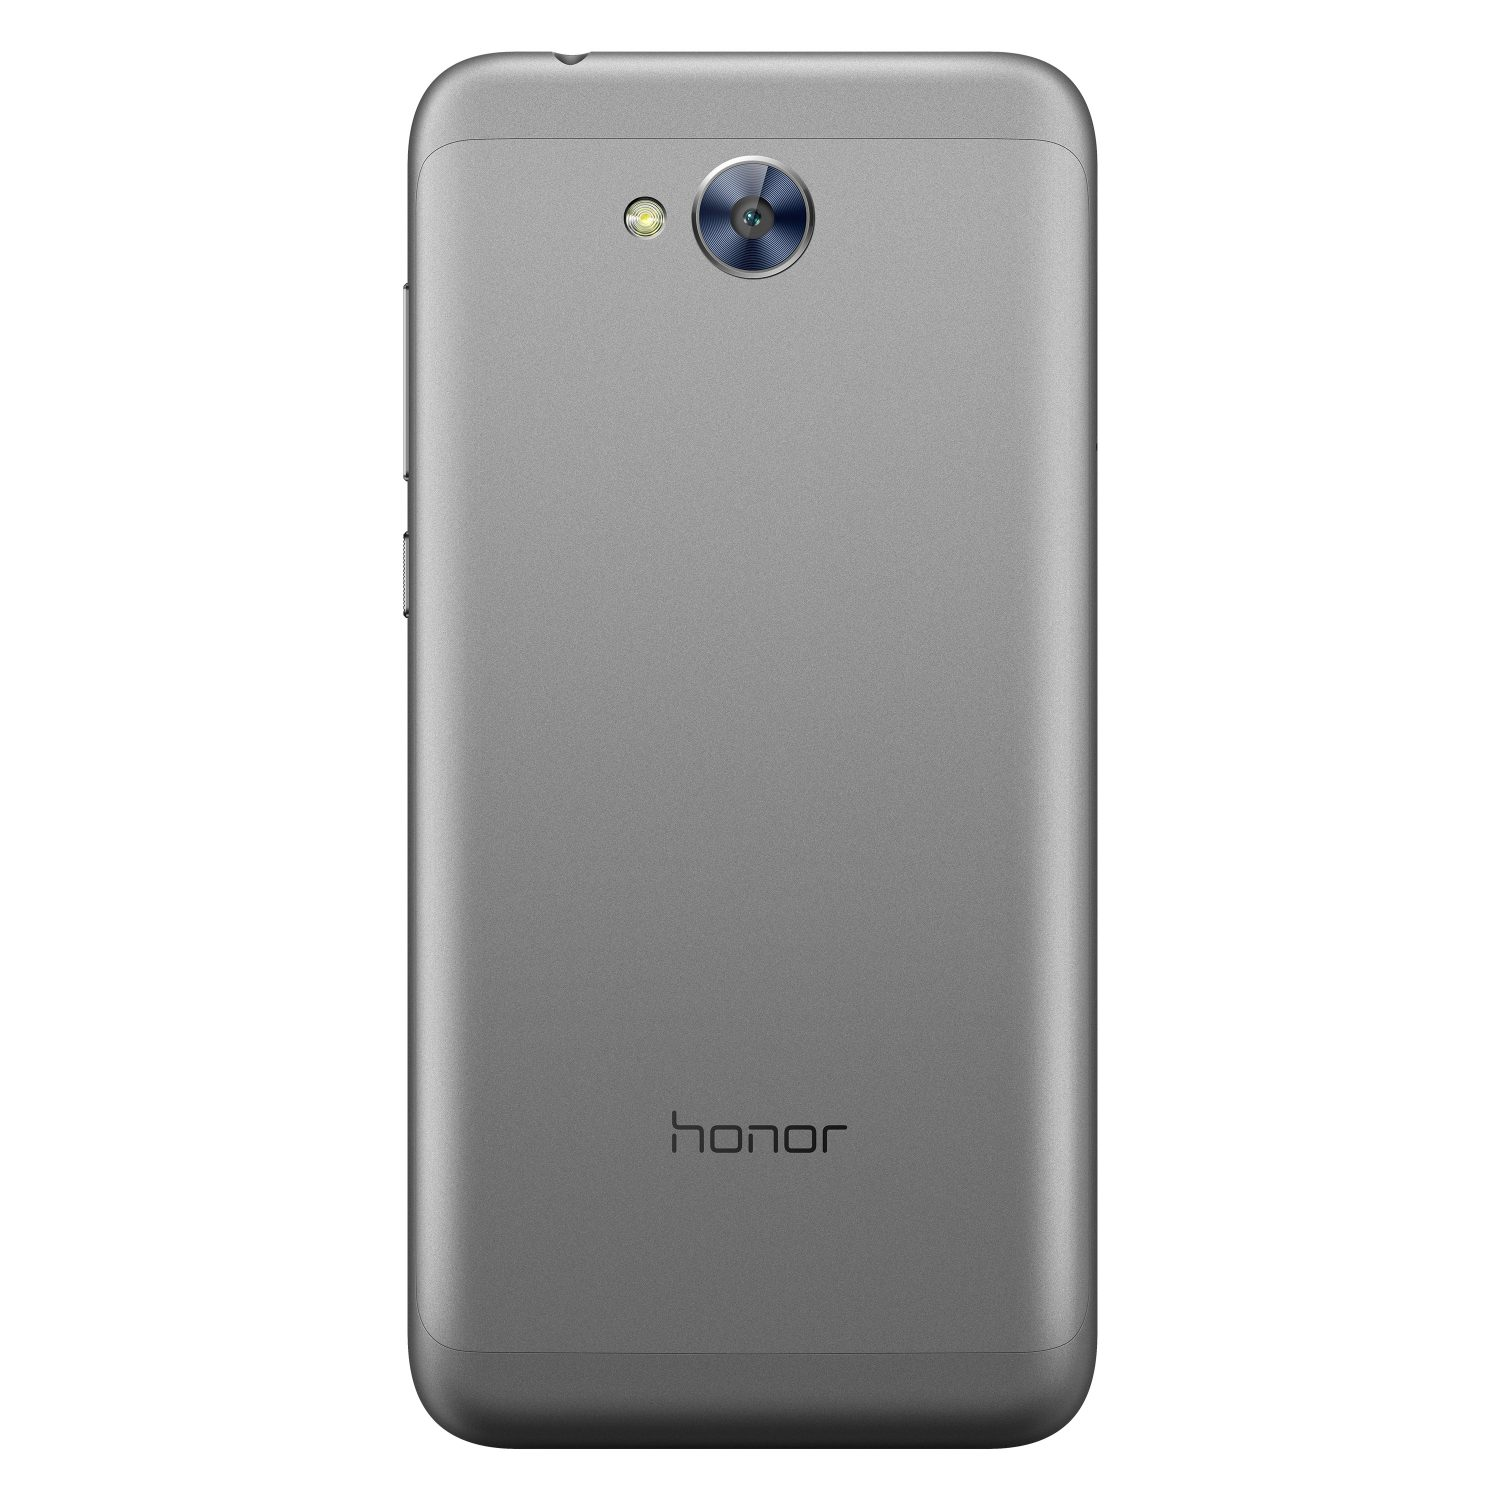 Honor reverses smartphone price creep with launch of £150 ...